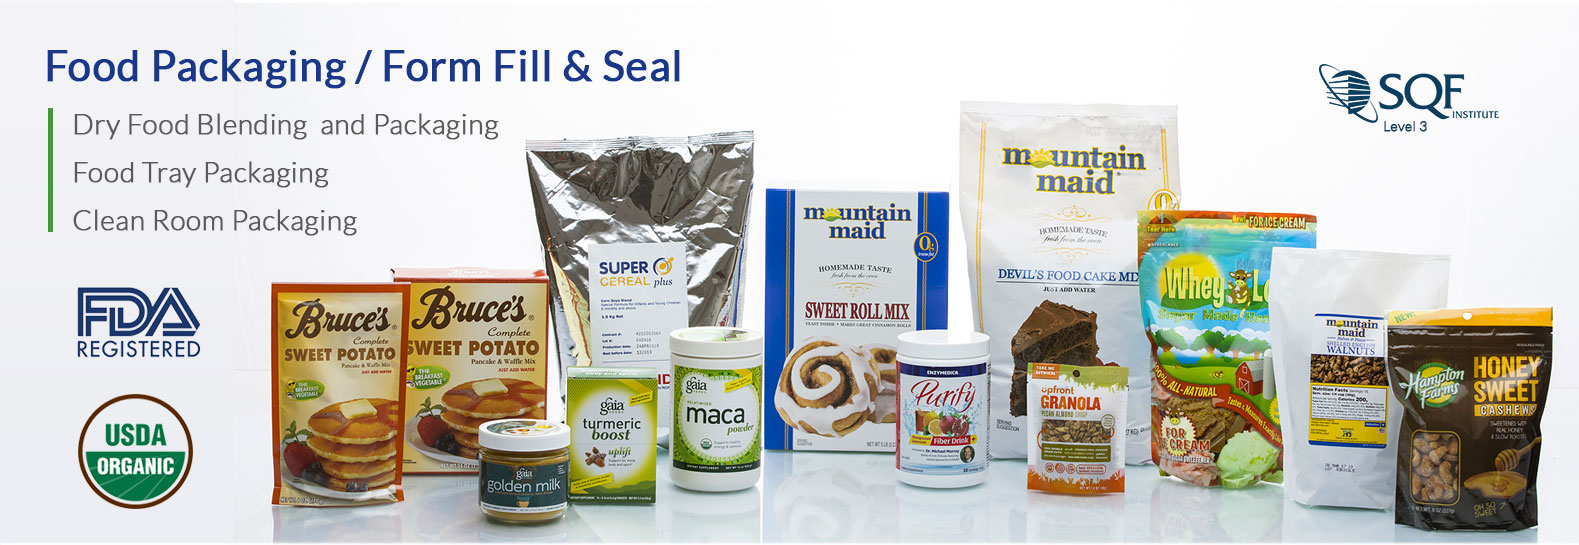 MARC provides Dry Food Blending and Packaging Services